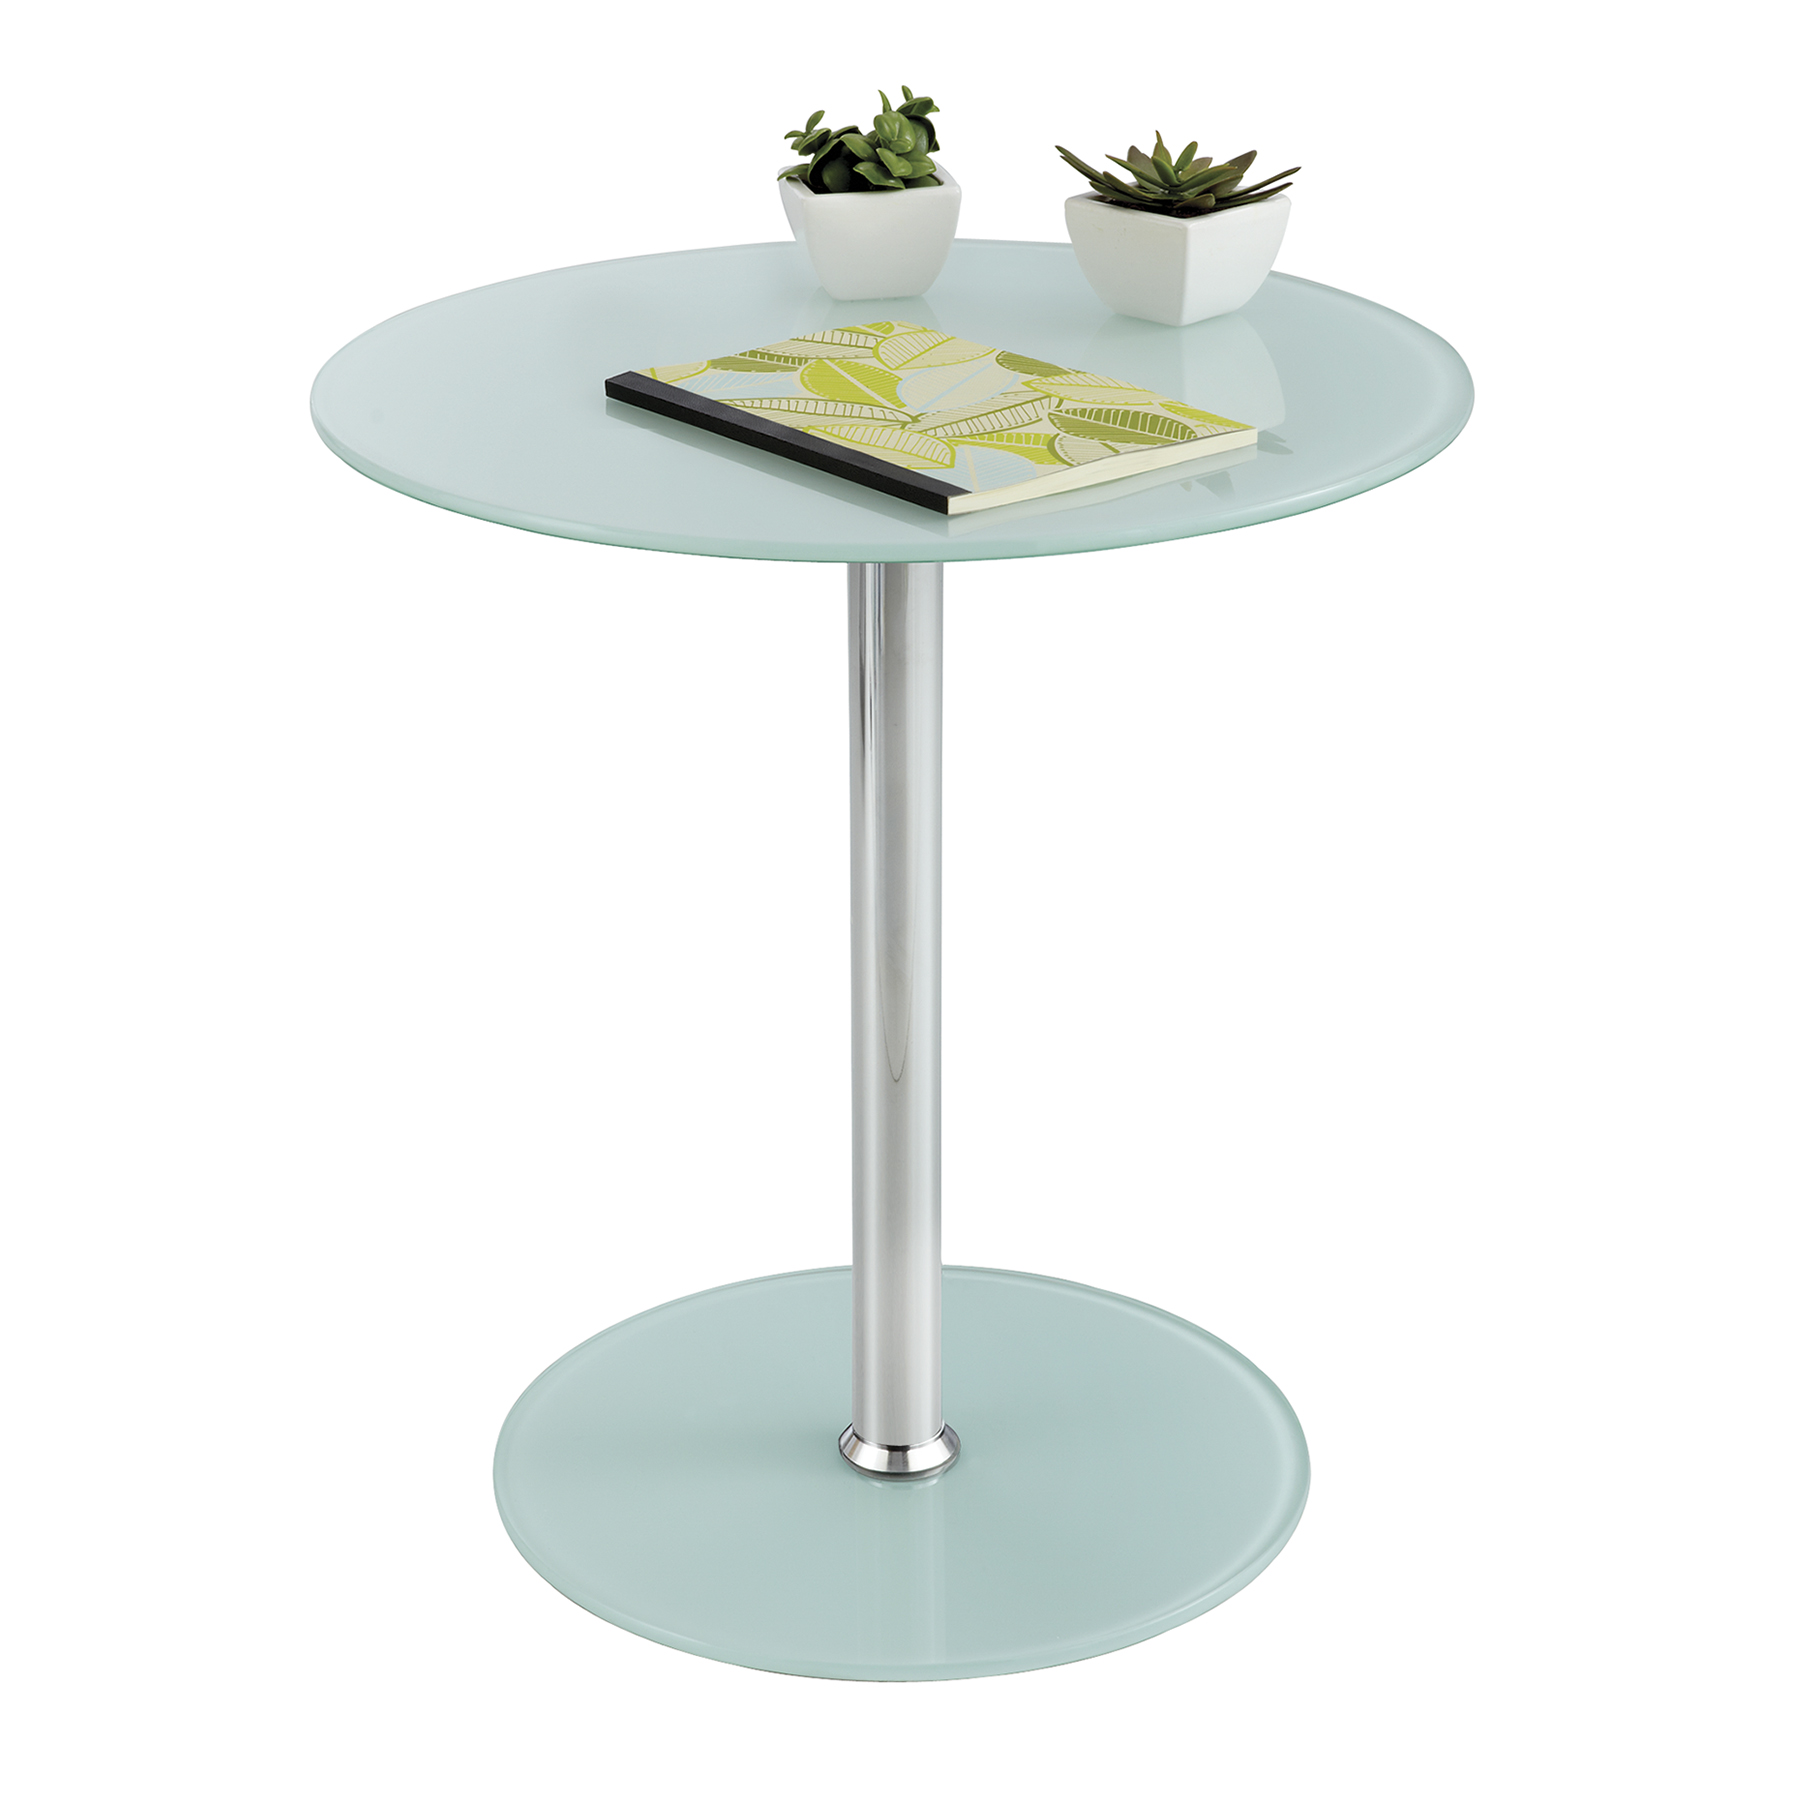 glass accent table safco products atlantic furniture cocktail coffee old antique tables round cotton tablecloth mirrored nightstand home goods unfinished end black marble and